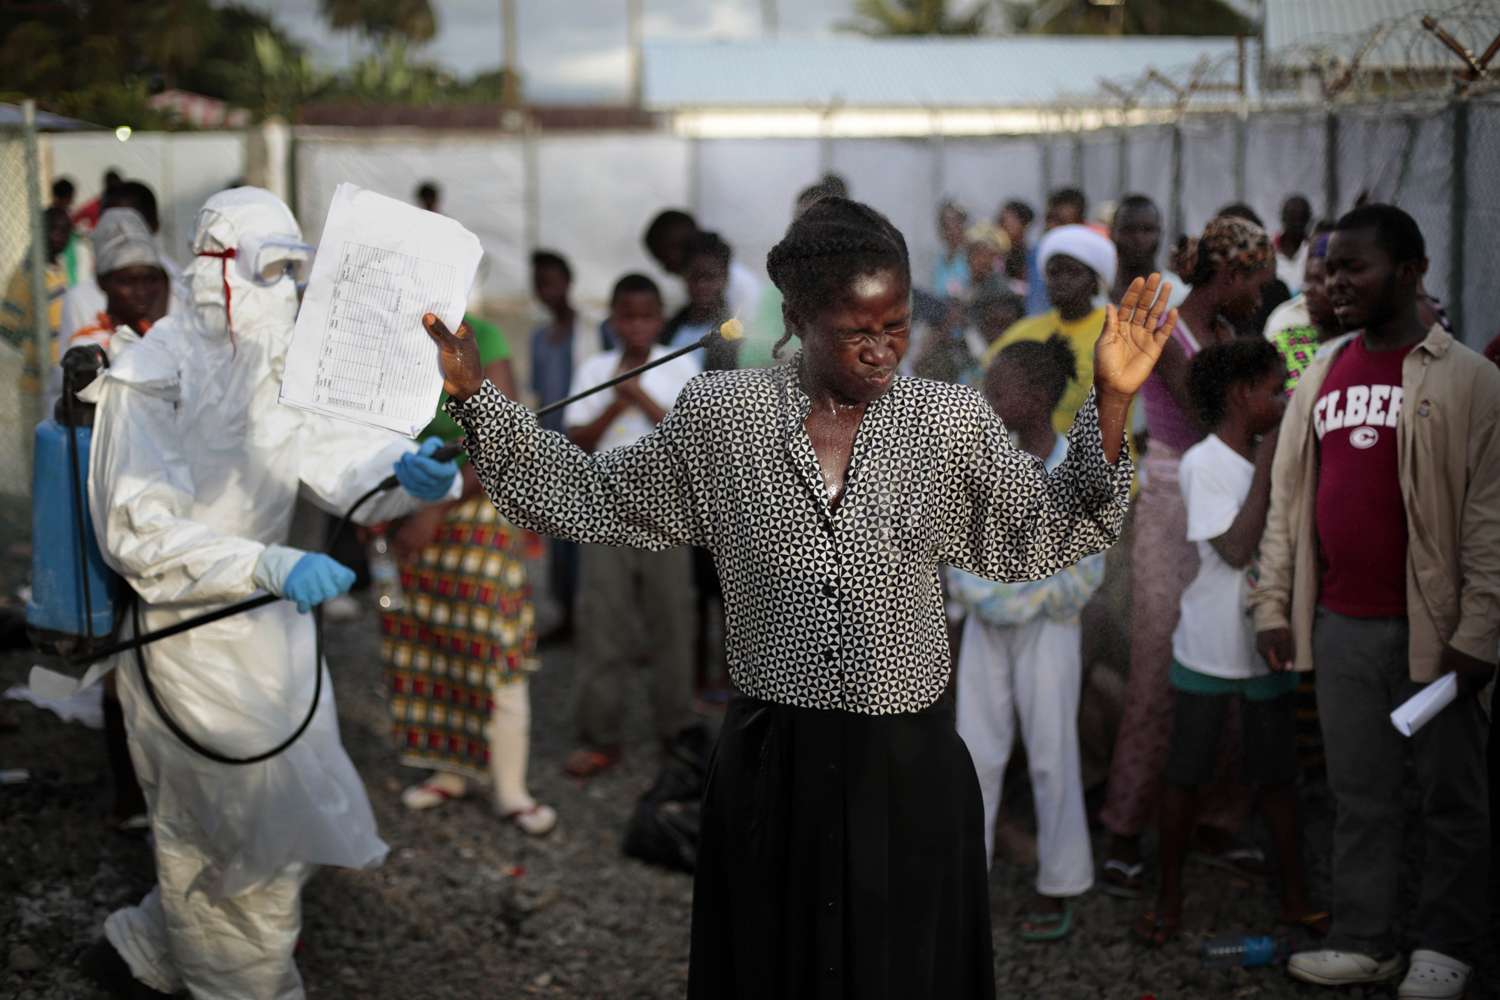 A woman being discharged from the Island Clinic Ebola treatment center in Monrovia, Liberia, is sprayed with disinfectant, Sept. 30, 2014.